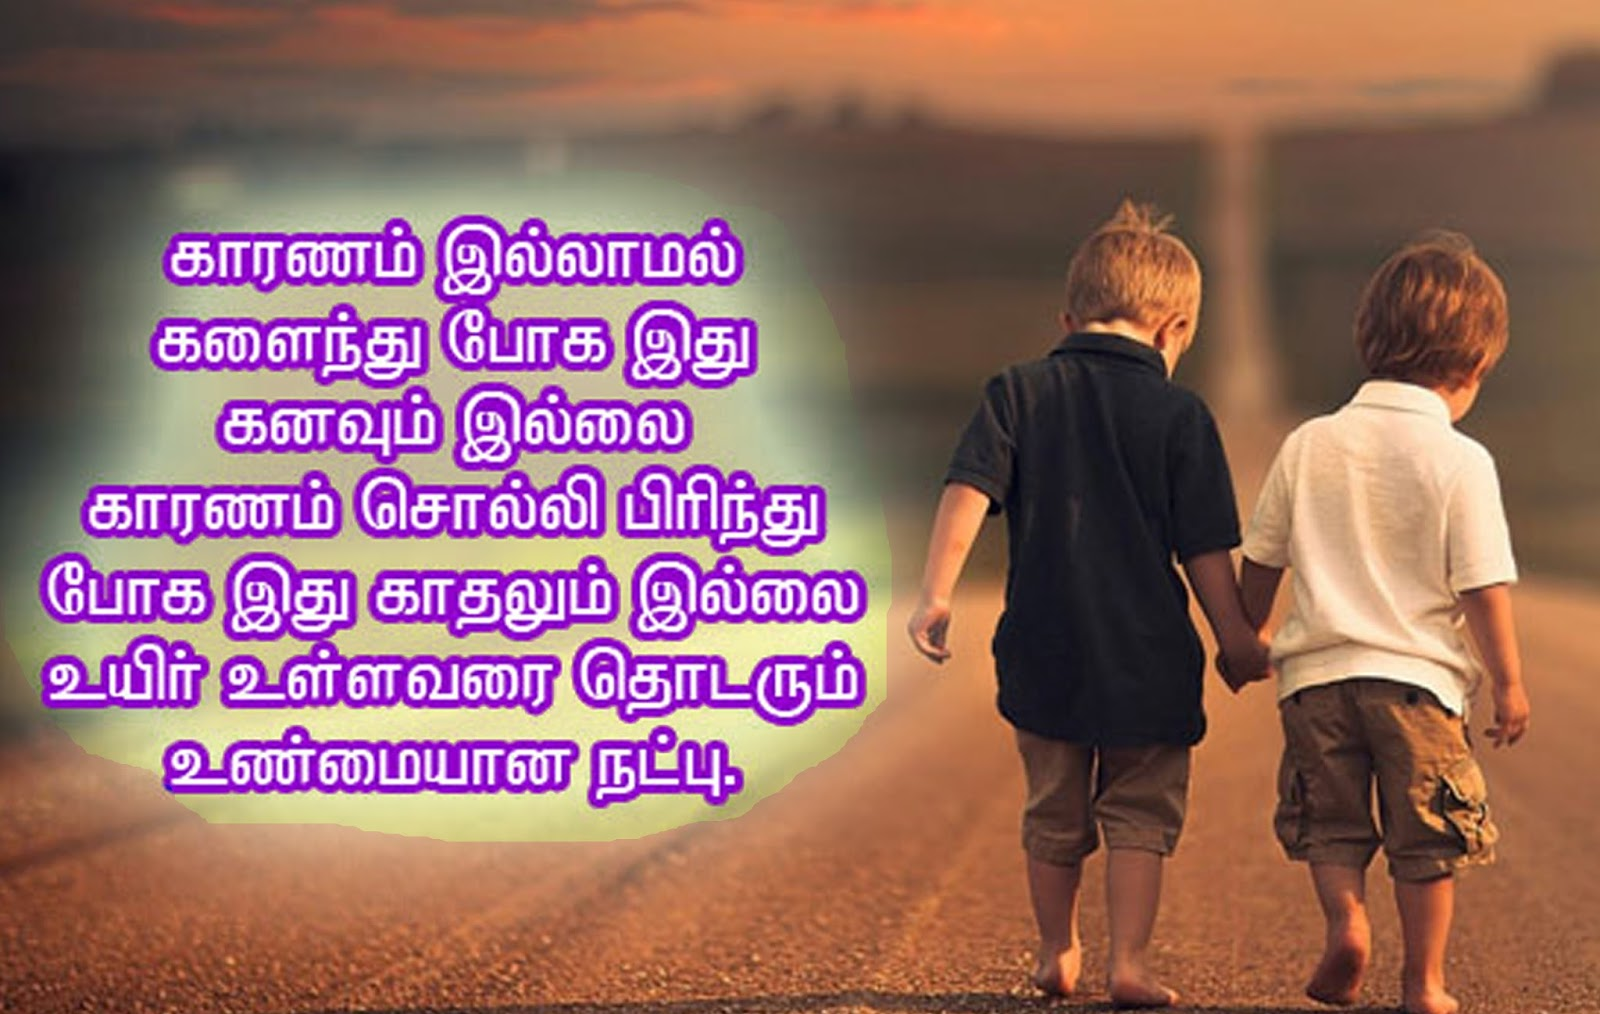 Tamil Friendship Quotes and Images